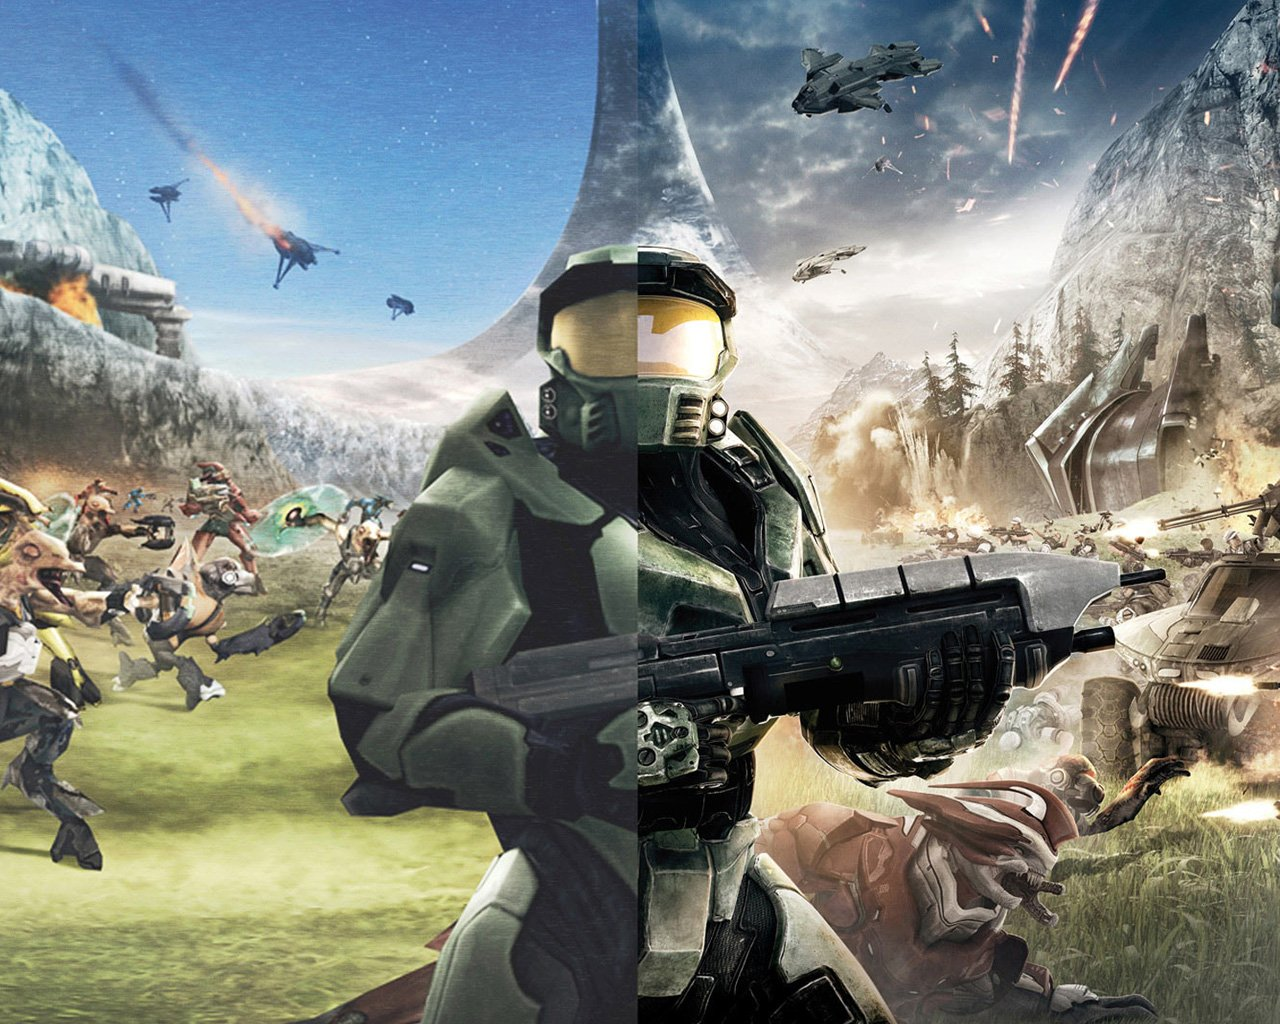 Halo Wallpaper in 1280x1024 1280x1024